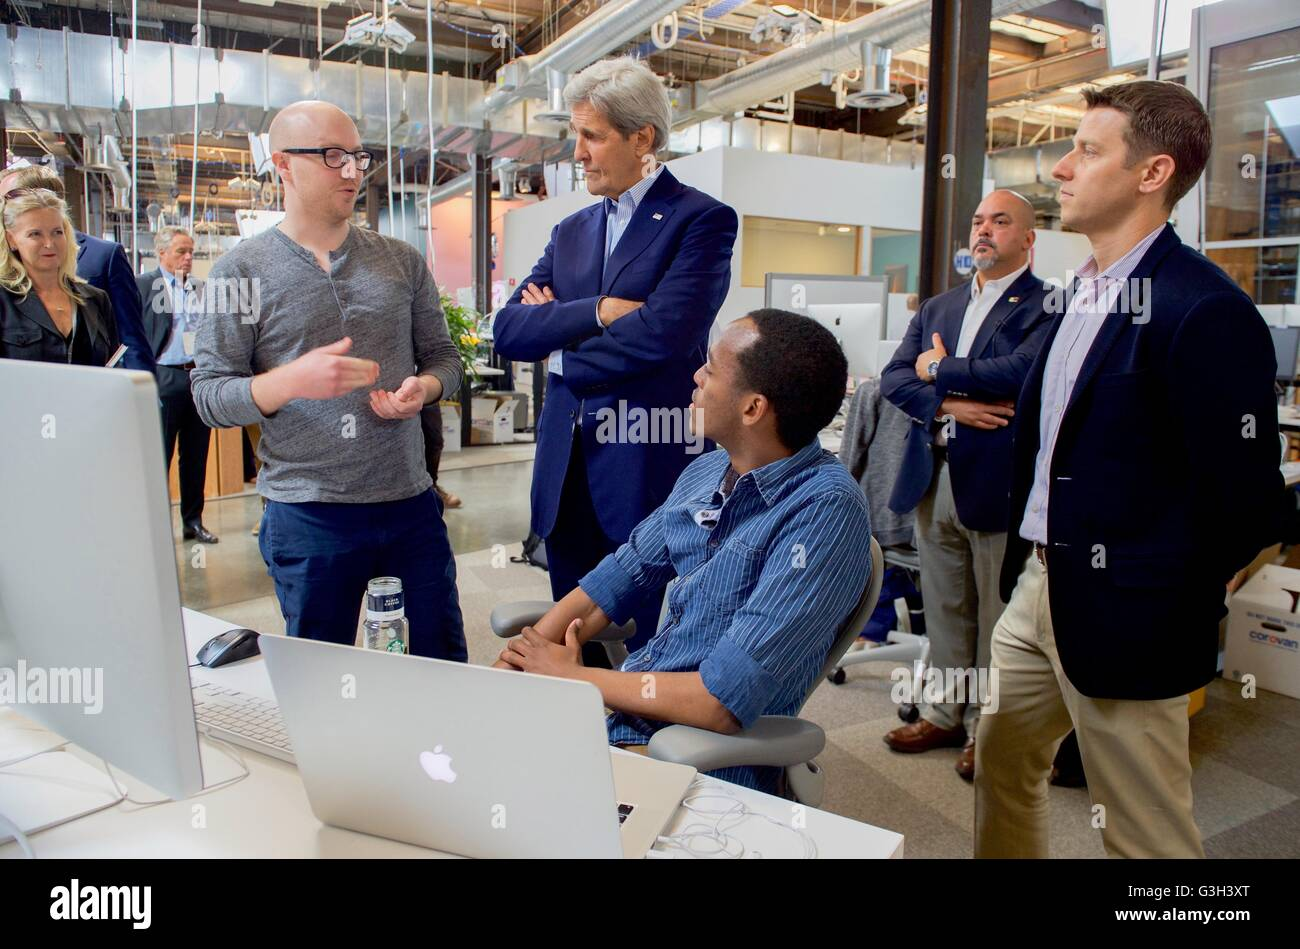 U.S. Secretary of State John Kerry chats with software developers before meeting with CEO Mark Zuckerberg at Facebook's - Stock Image